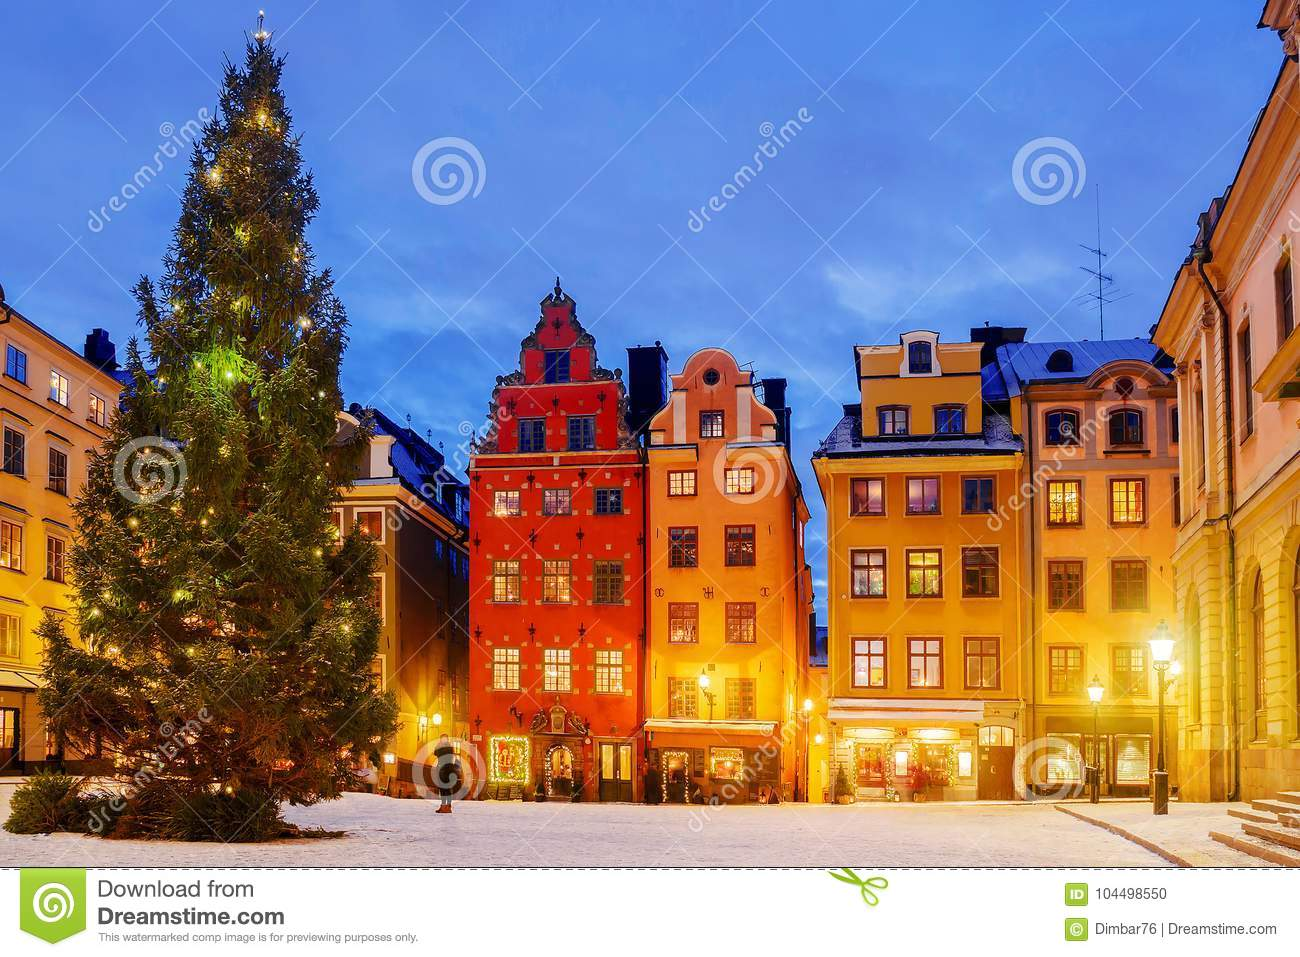 weihnachten in der nacht stockholm schweden stockfoto. Black Bedroom Furniture Sets. Home Design Ideas